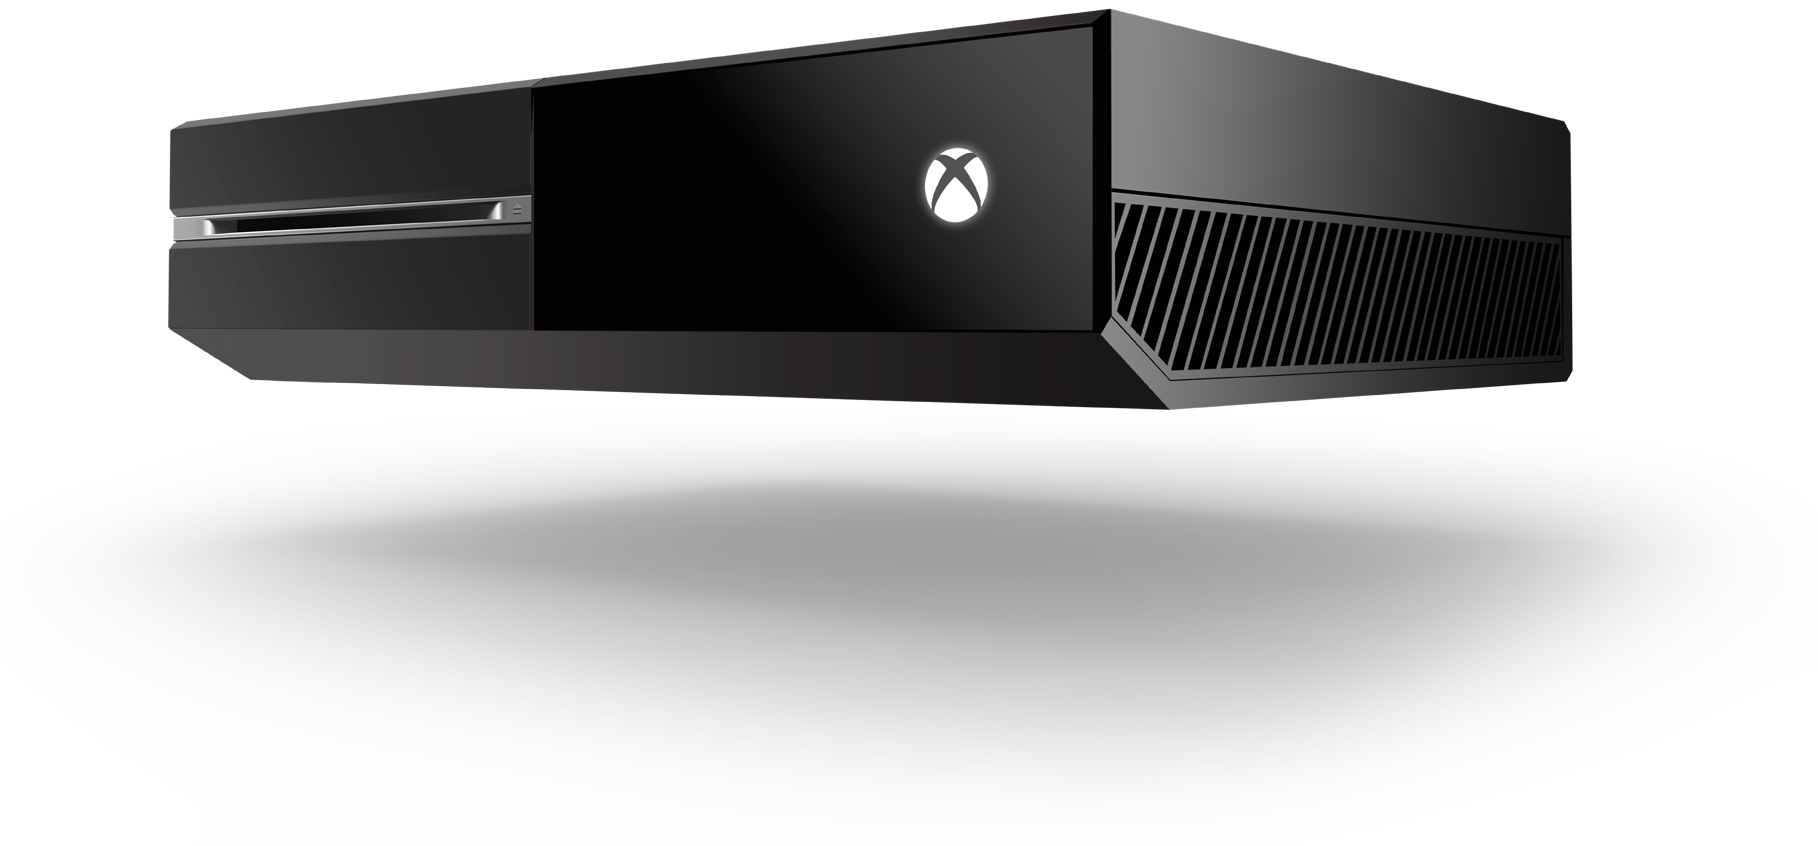 Report: Contractors Have Listened To Inadvertently Recorded Audio From Xbox Owners' Homes